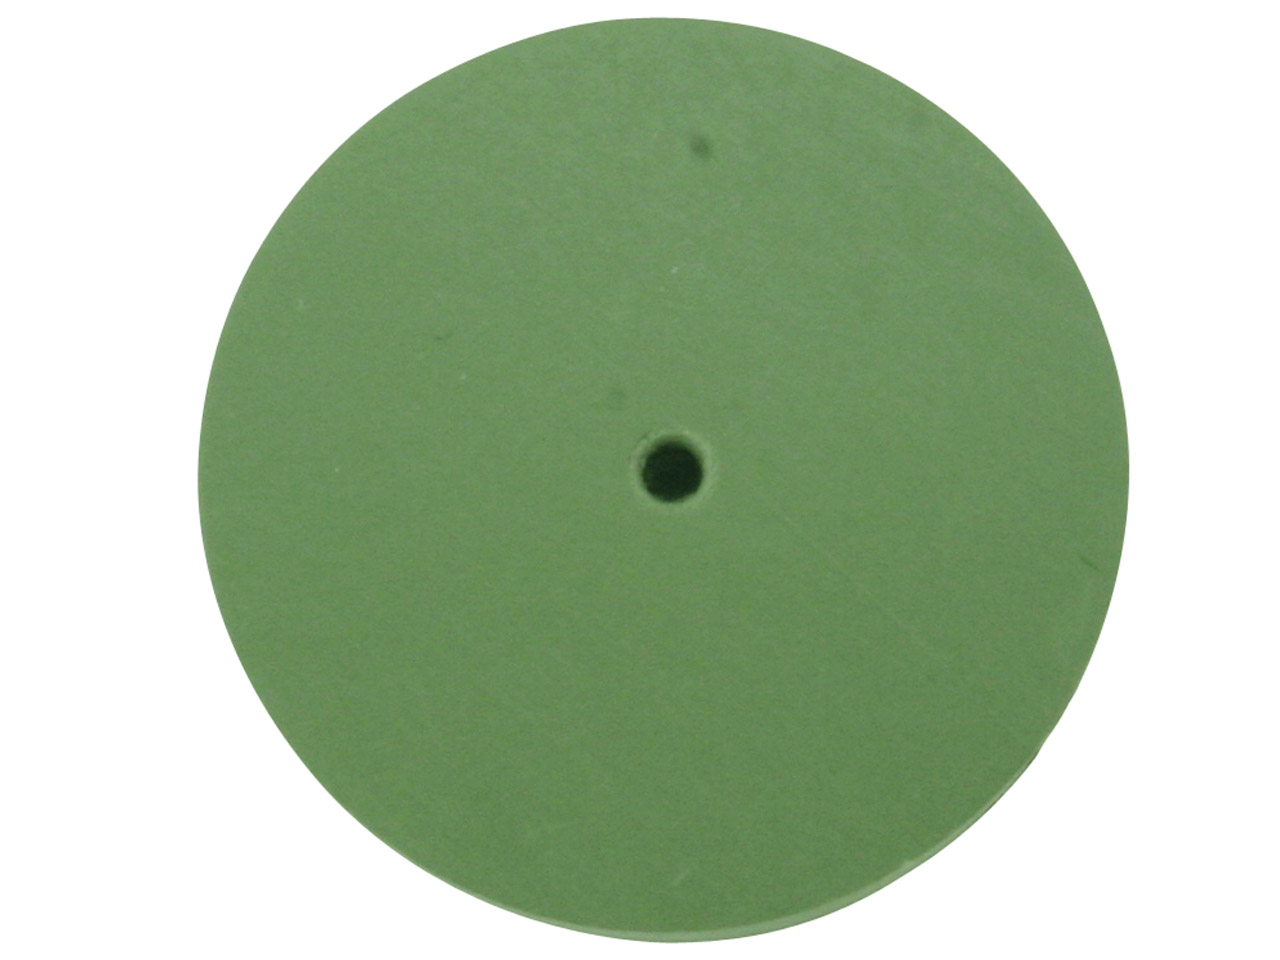 Eveflex Rubber Wheel, 801 Green -  Extra Fine, 23 X 3mm